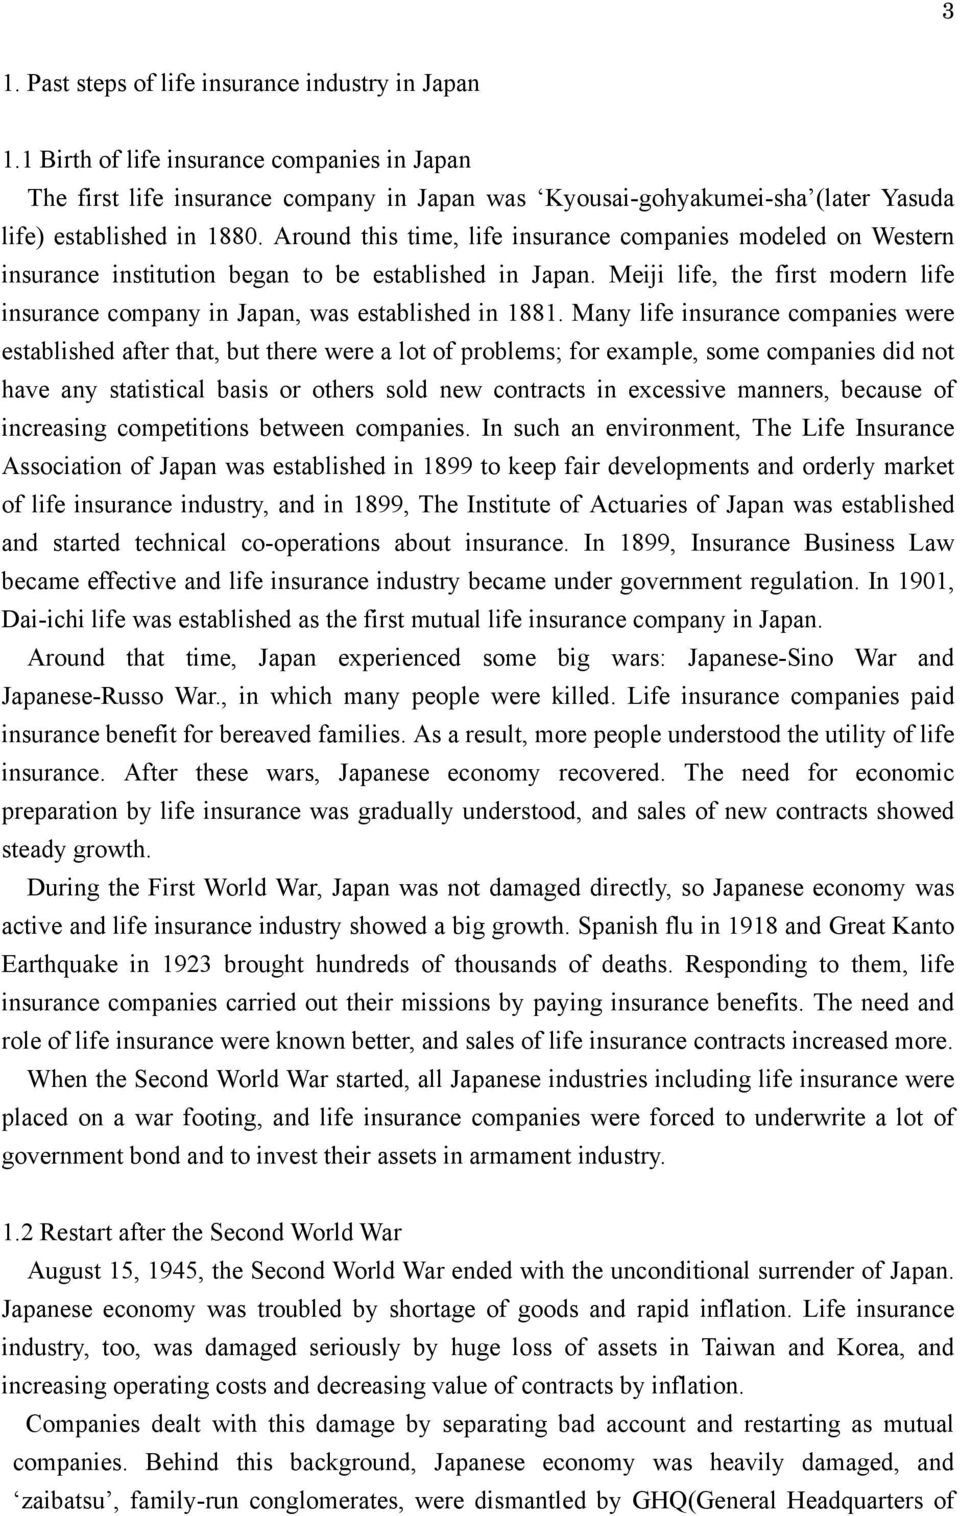 Around this time, life insurance companies modeled on Western insurance institution began to be established in Japan.